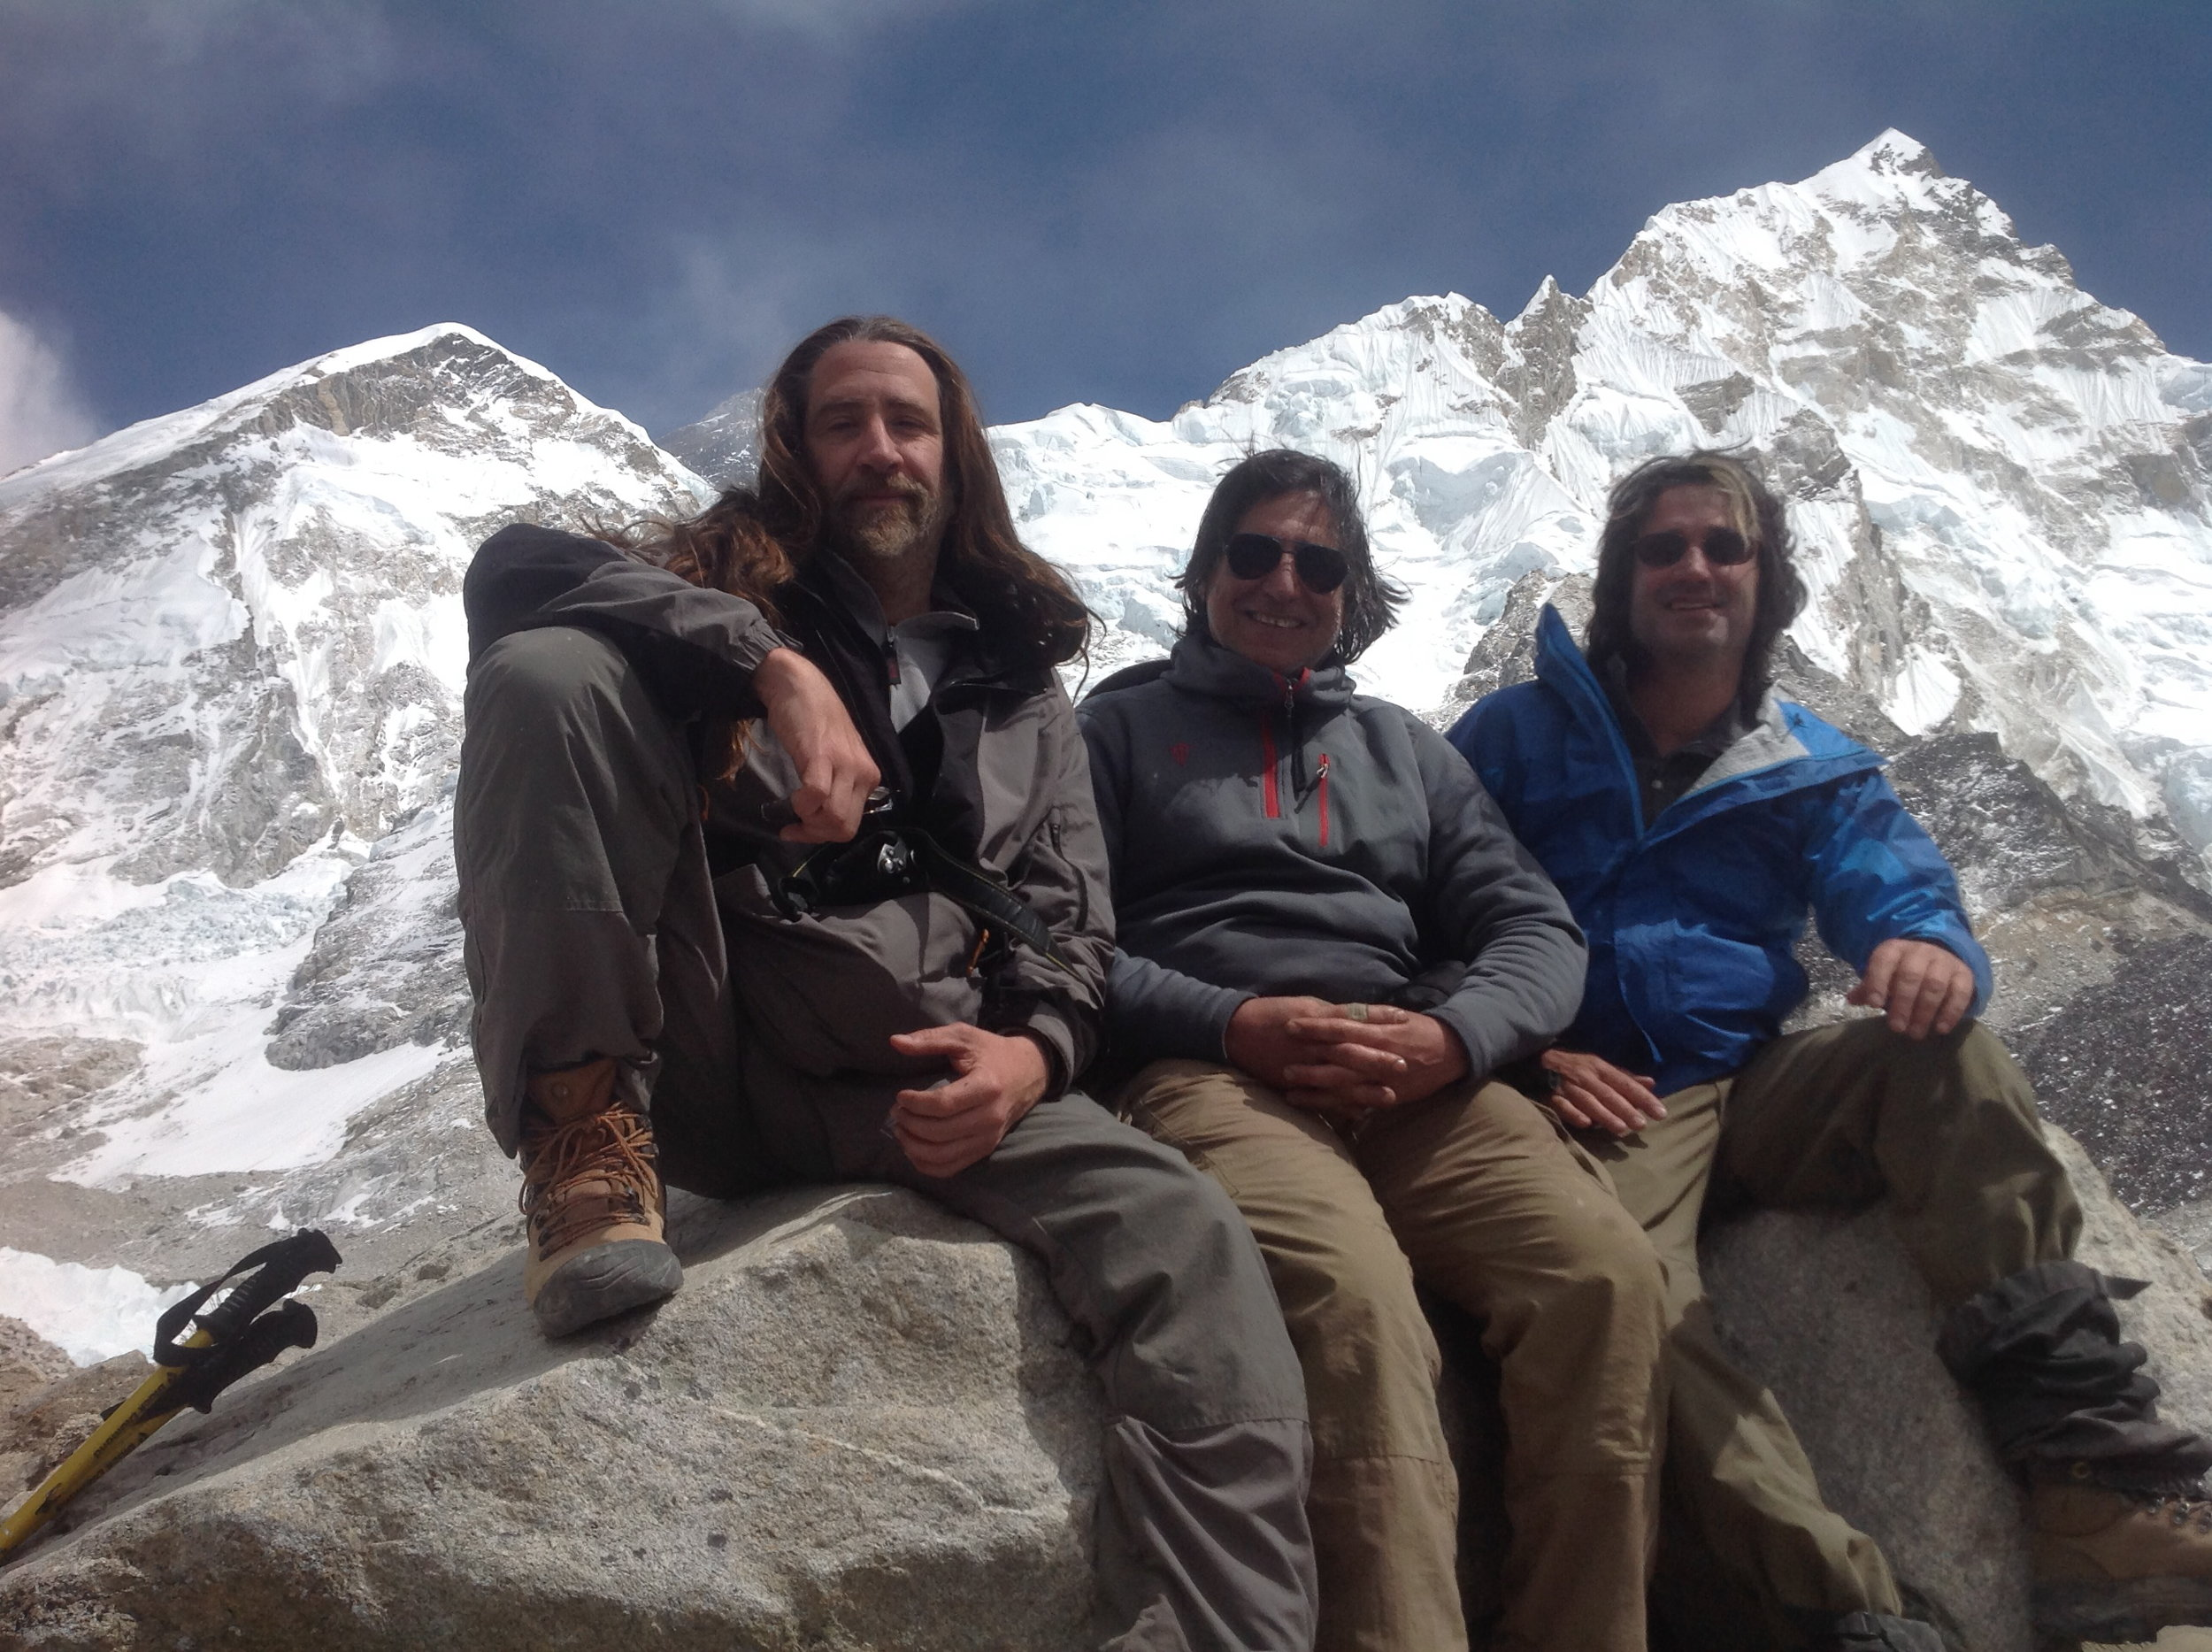 09_09 All 3 in front of Everest.jpg